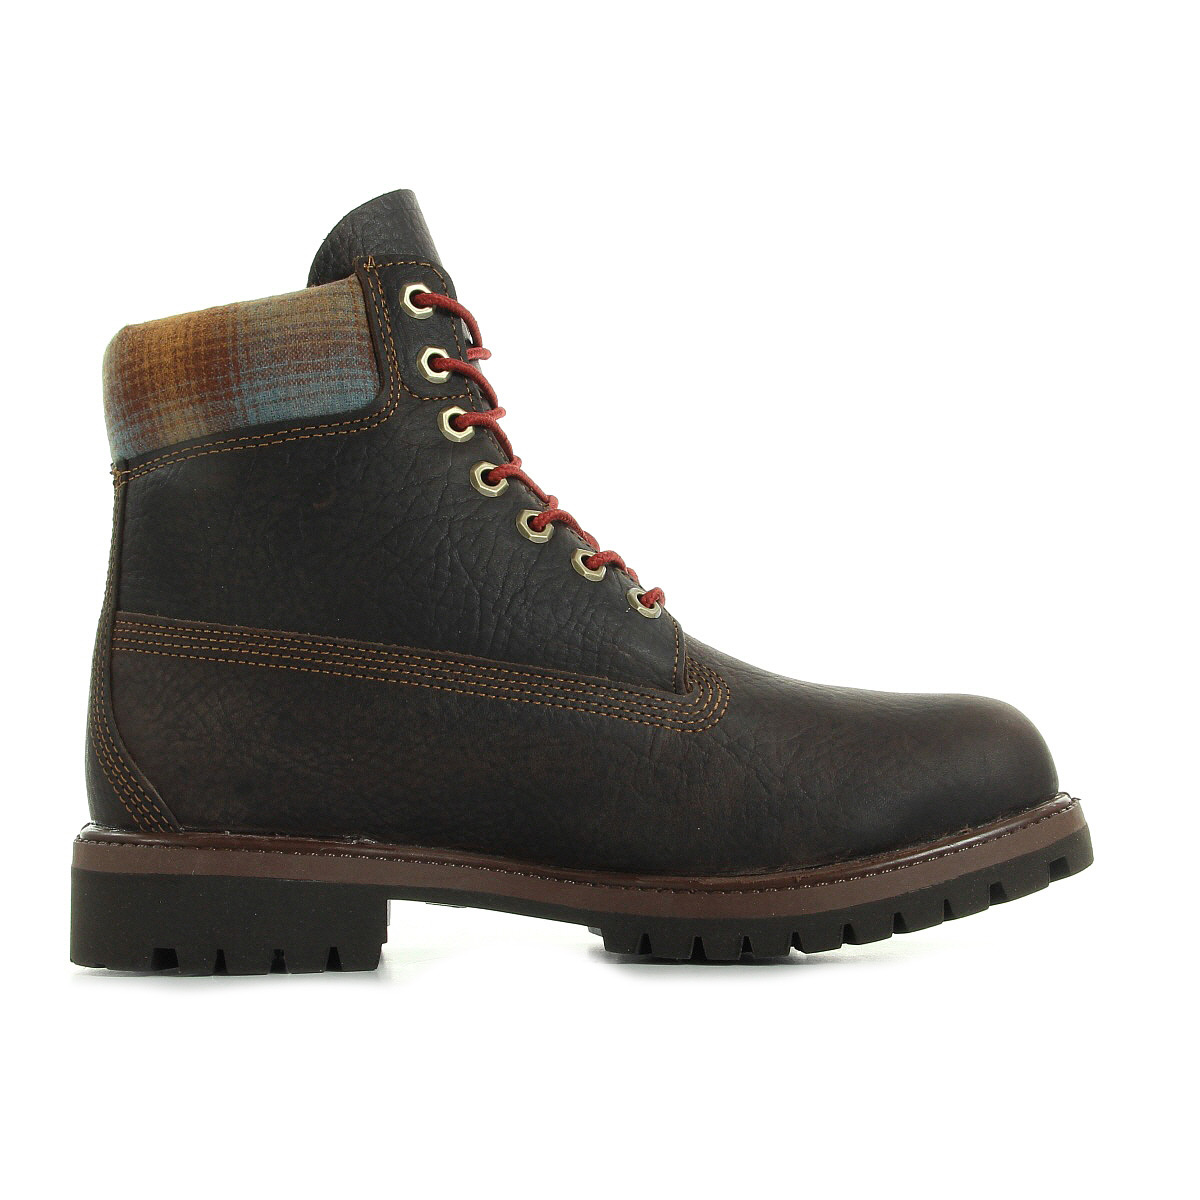 Timberland 6 IN Prem Bt C9640B, Boots homme